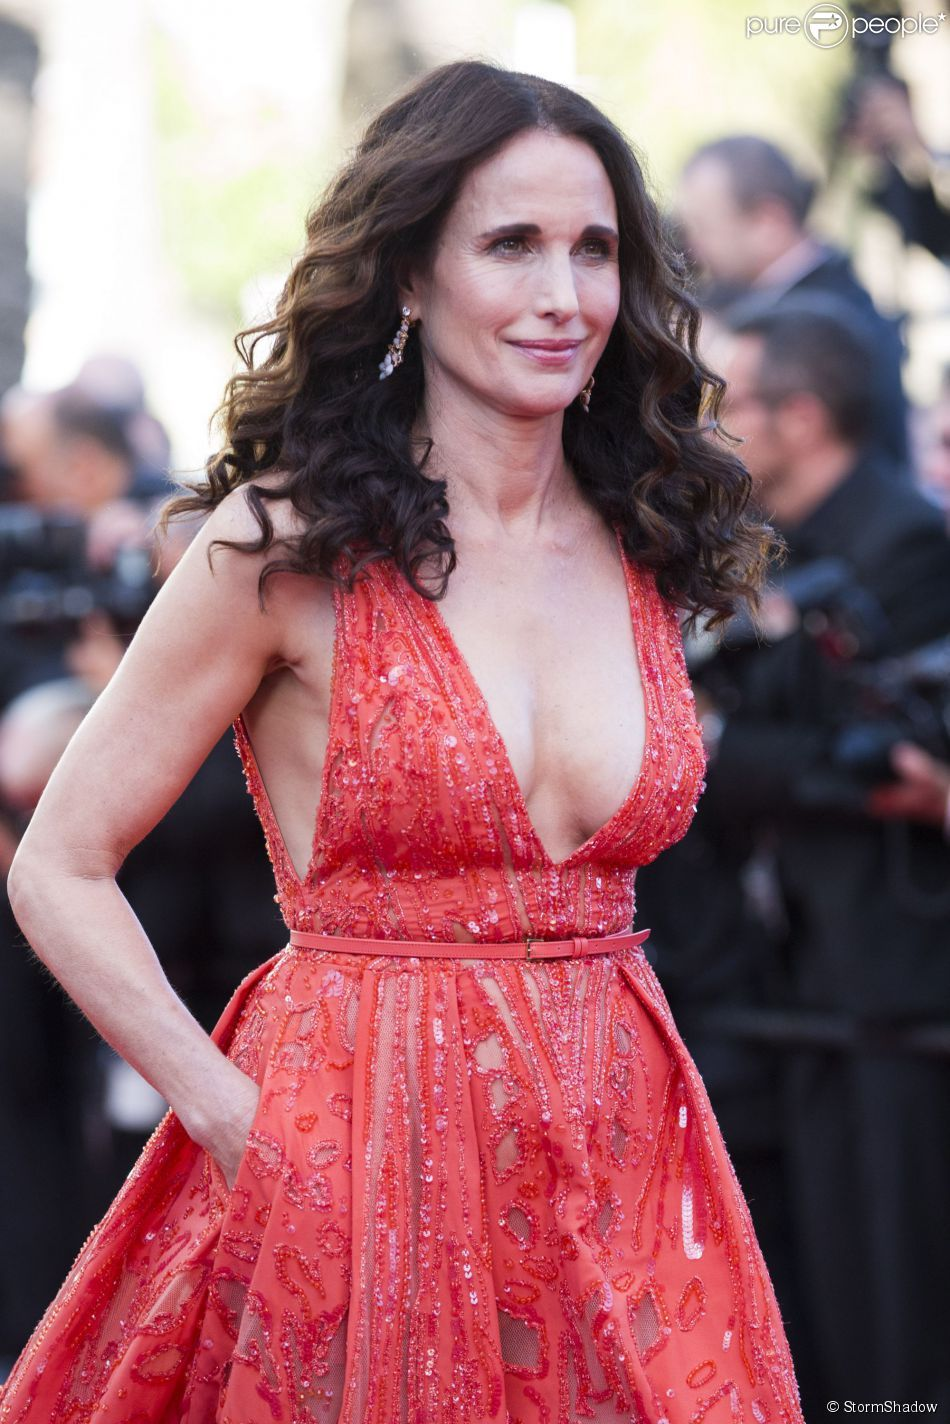 Hacked Andie MacDowell nudes (22 foto and video), Sexy, Hot, Twitter, bra 2020